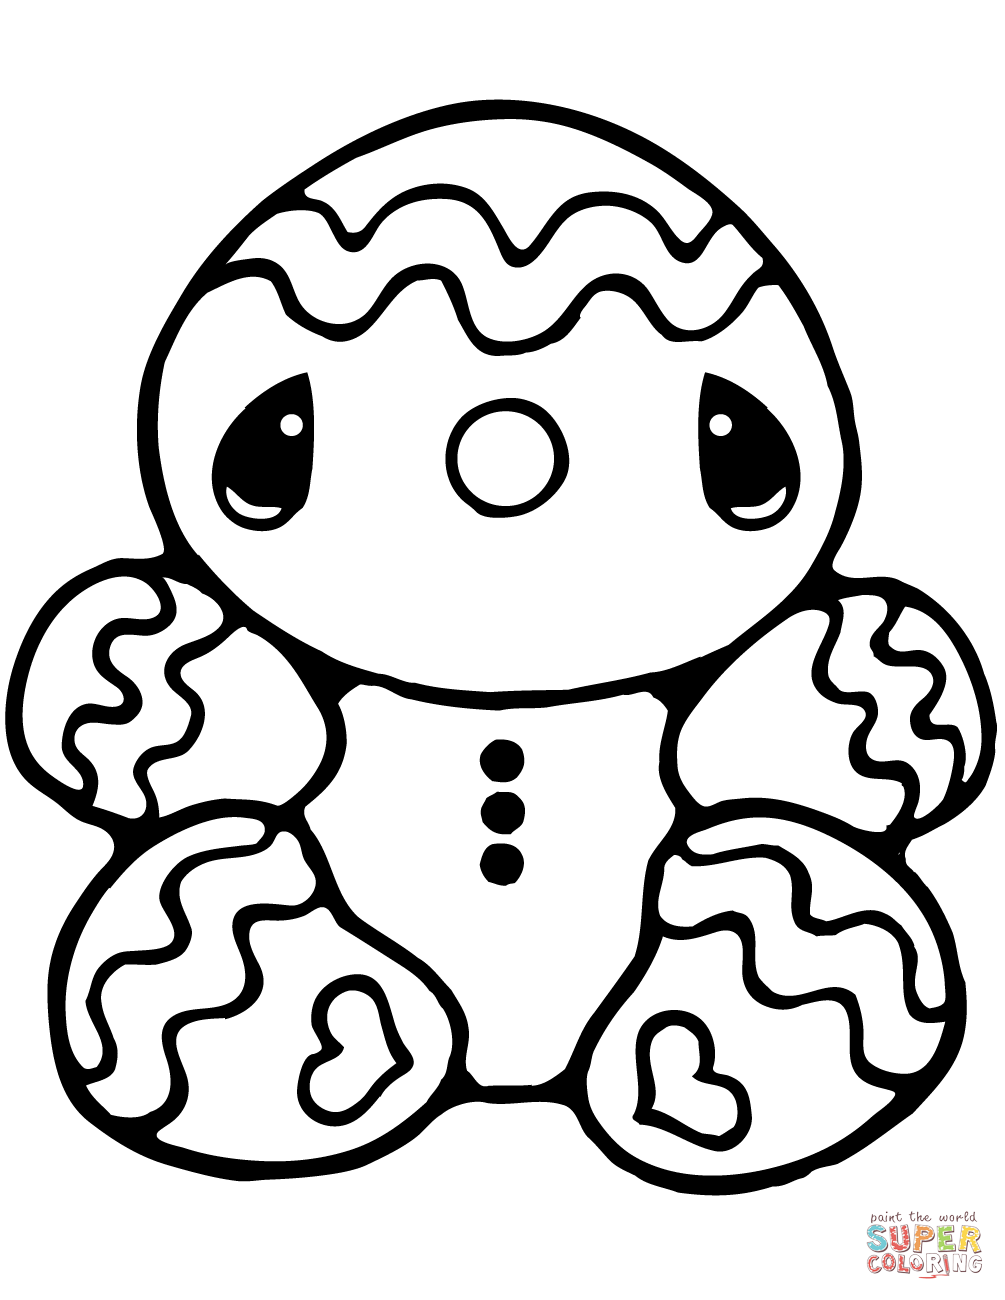 gingerbread coloring pages free printable gingerbread man coloring pages for kids gingerbread pages coloring